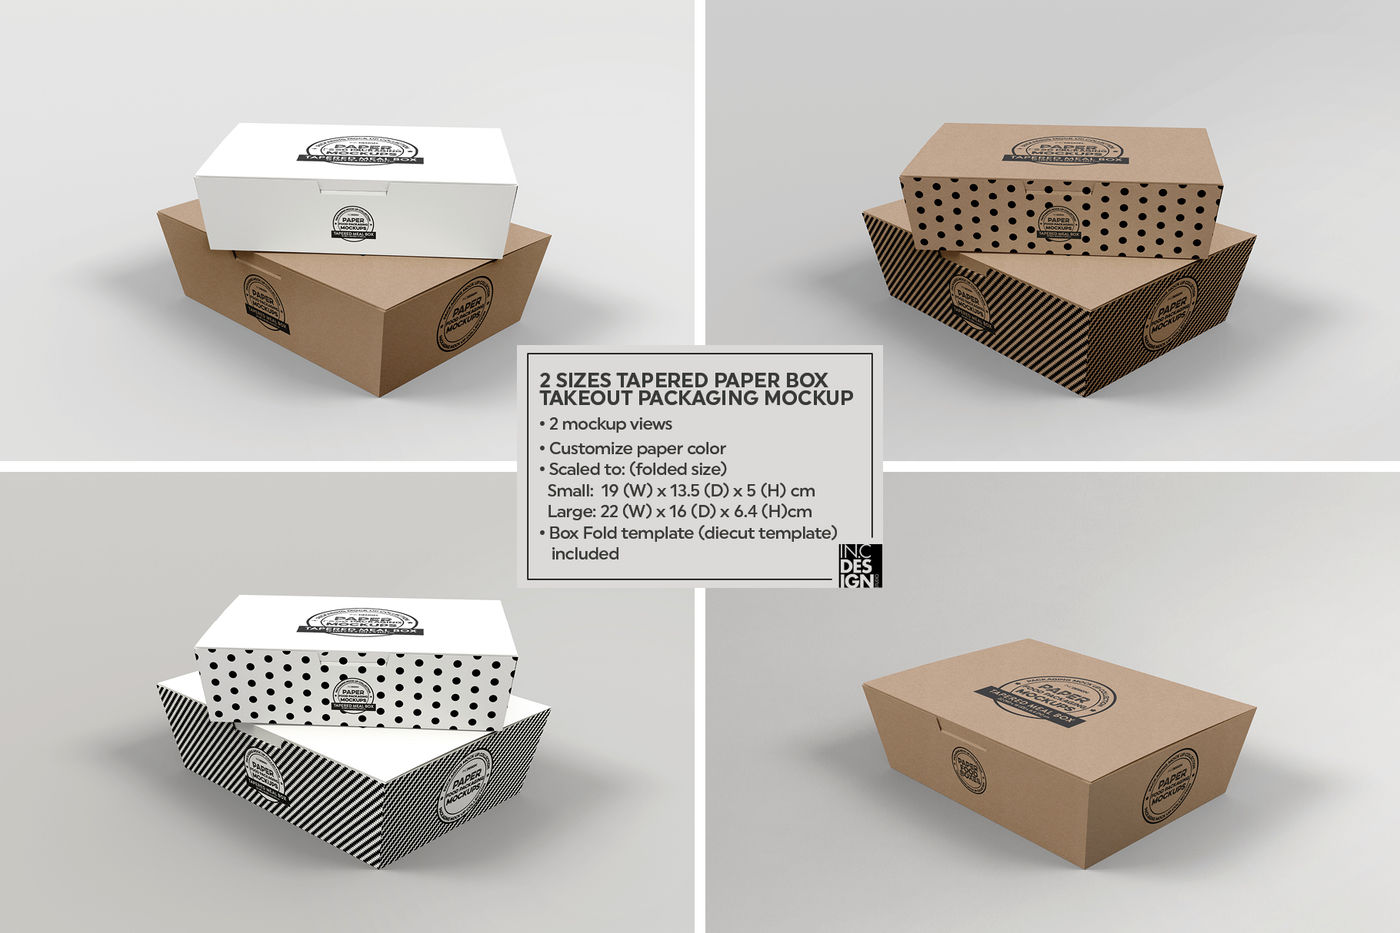 Textured Paper Box Mockup Front View